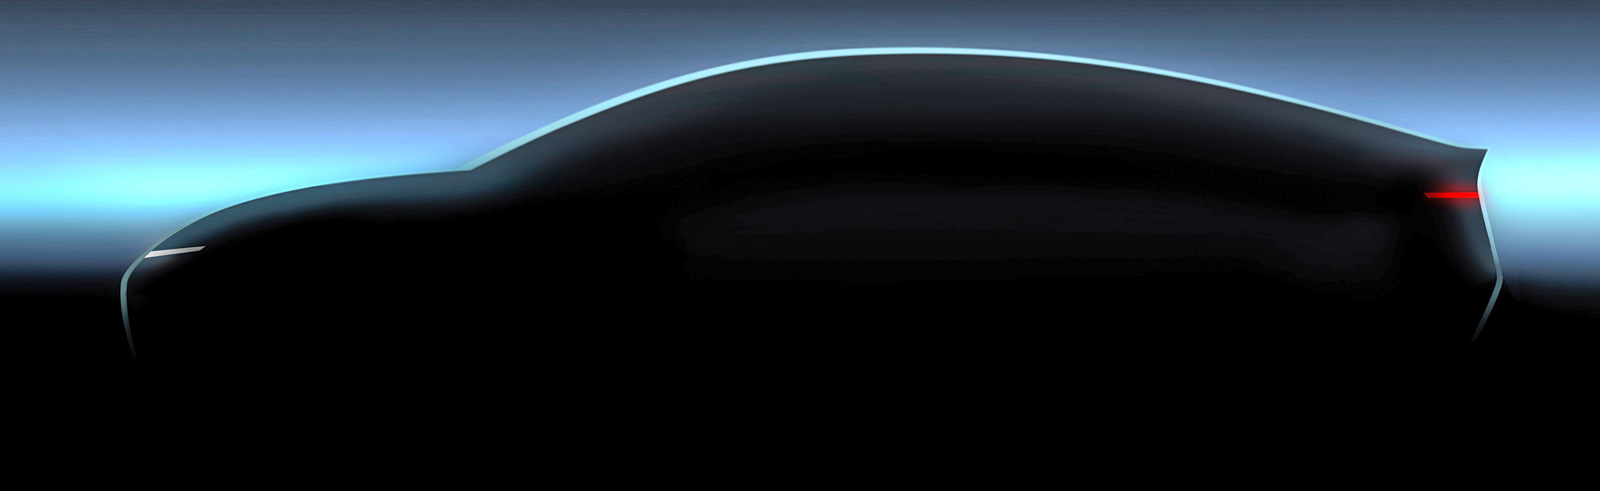 Volkswagen teases its Project Trinity - a sporty flat sedan that will launch in 2026